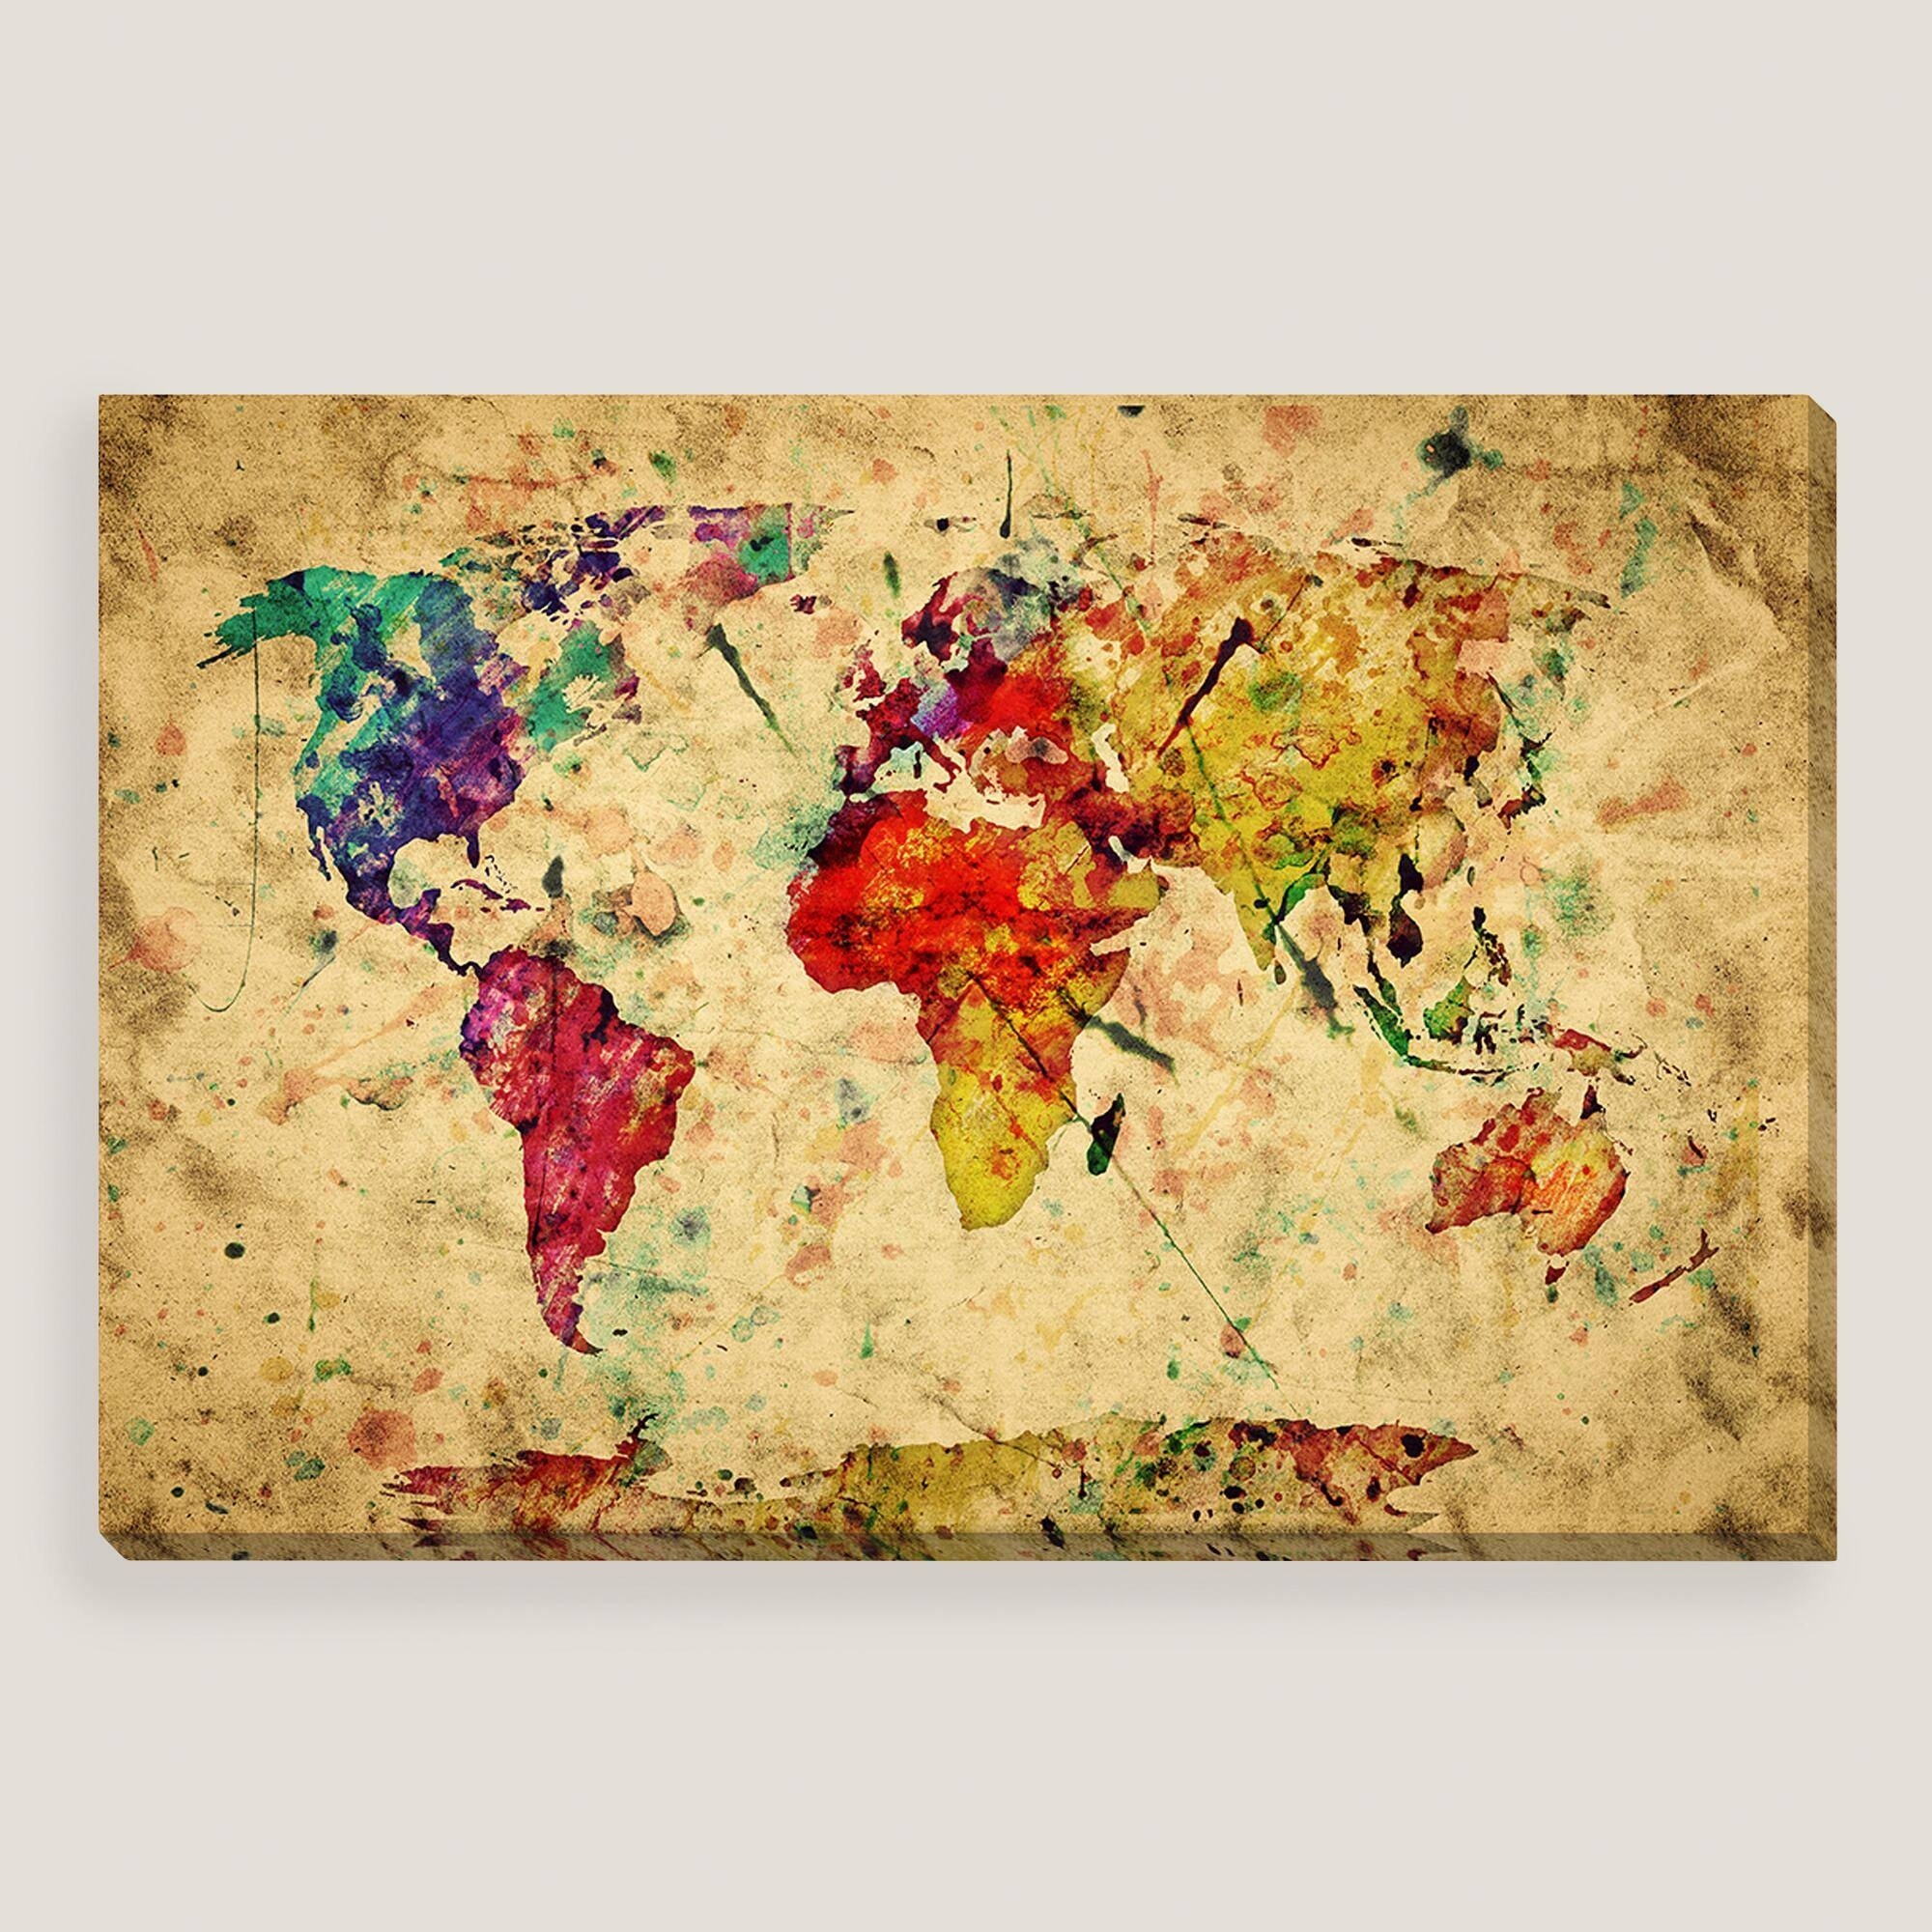 Wall Art Design: Vintage Map Wall Art Amazing Design Collection Pertaining To Best And Newest Vintage Style Wall Art (View 10 of 20)